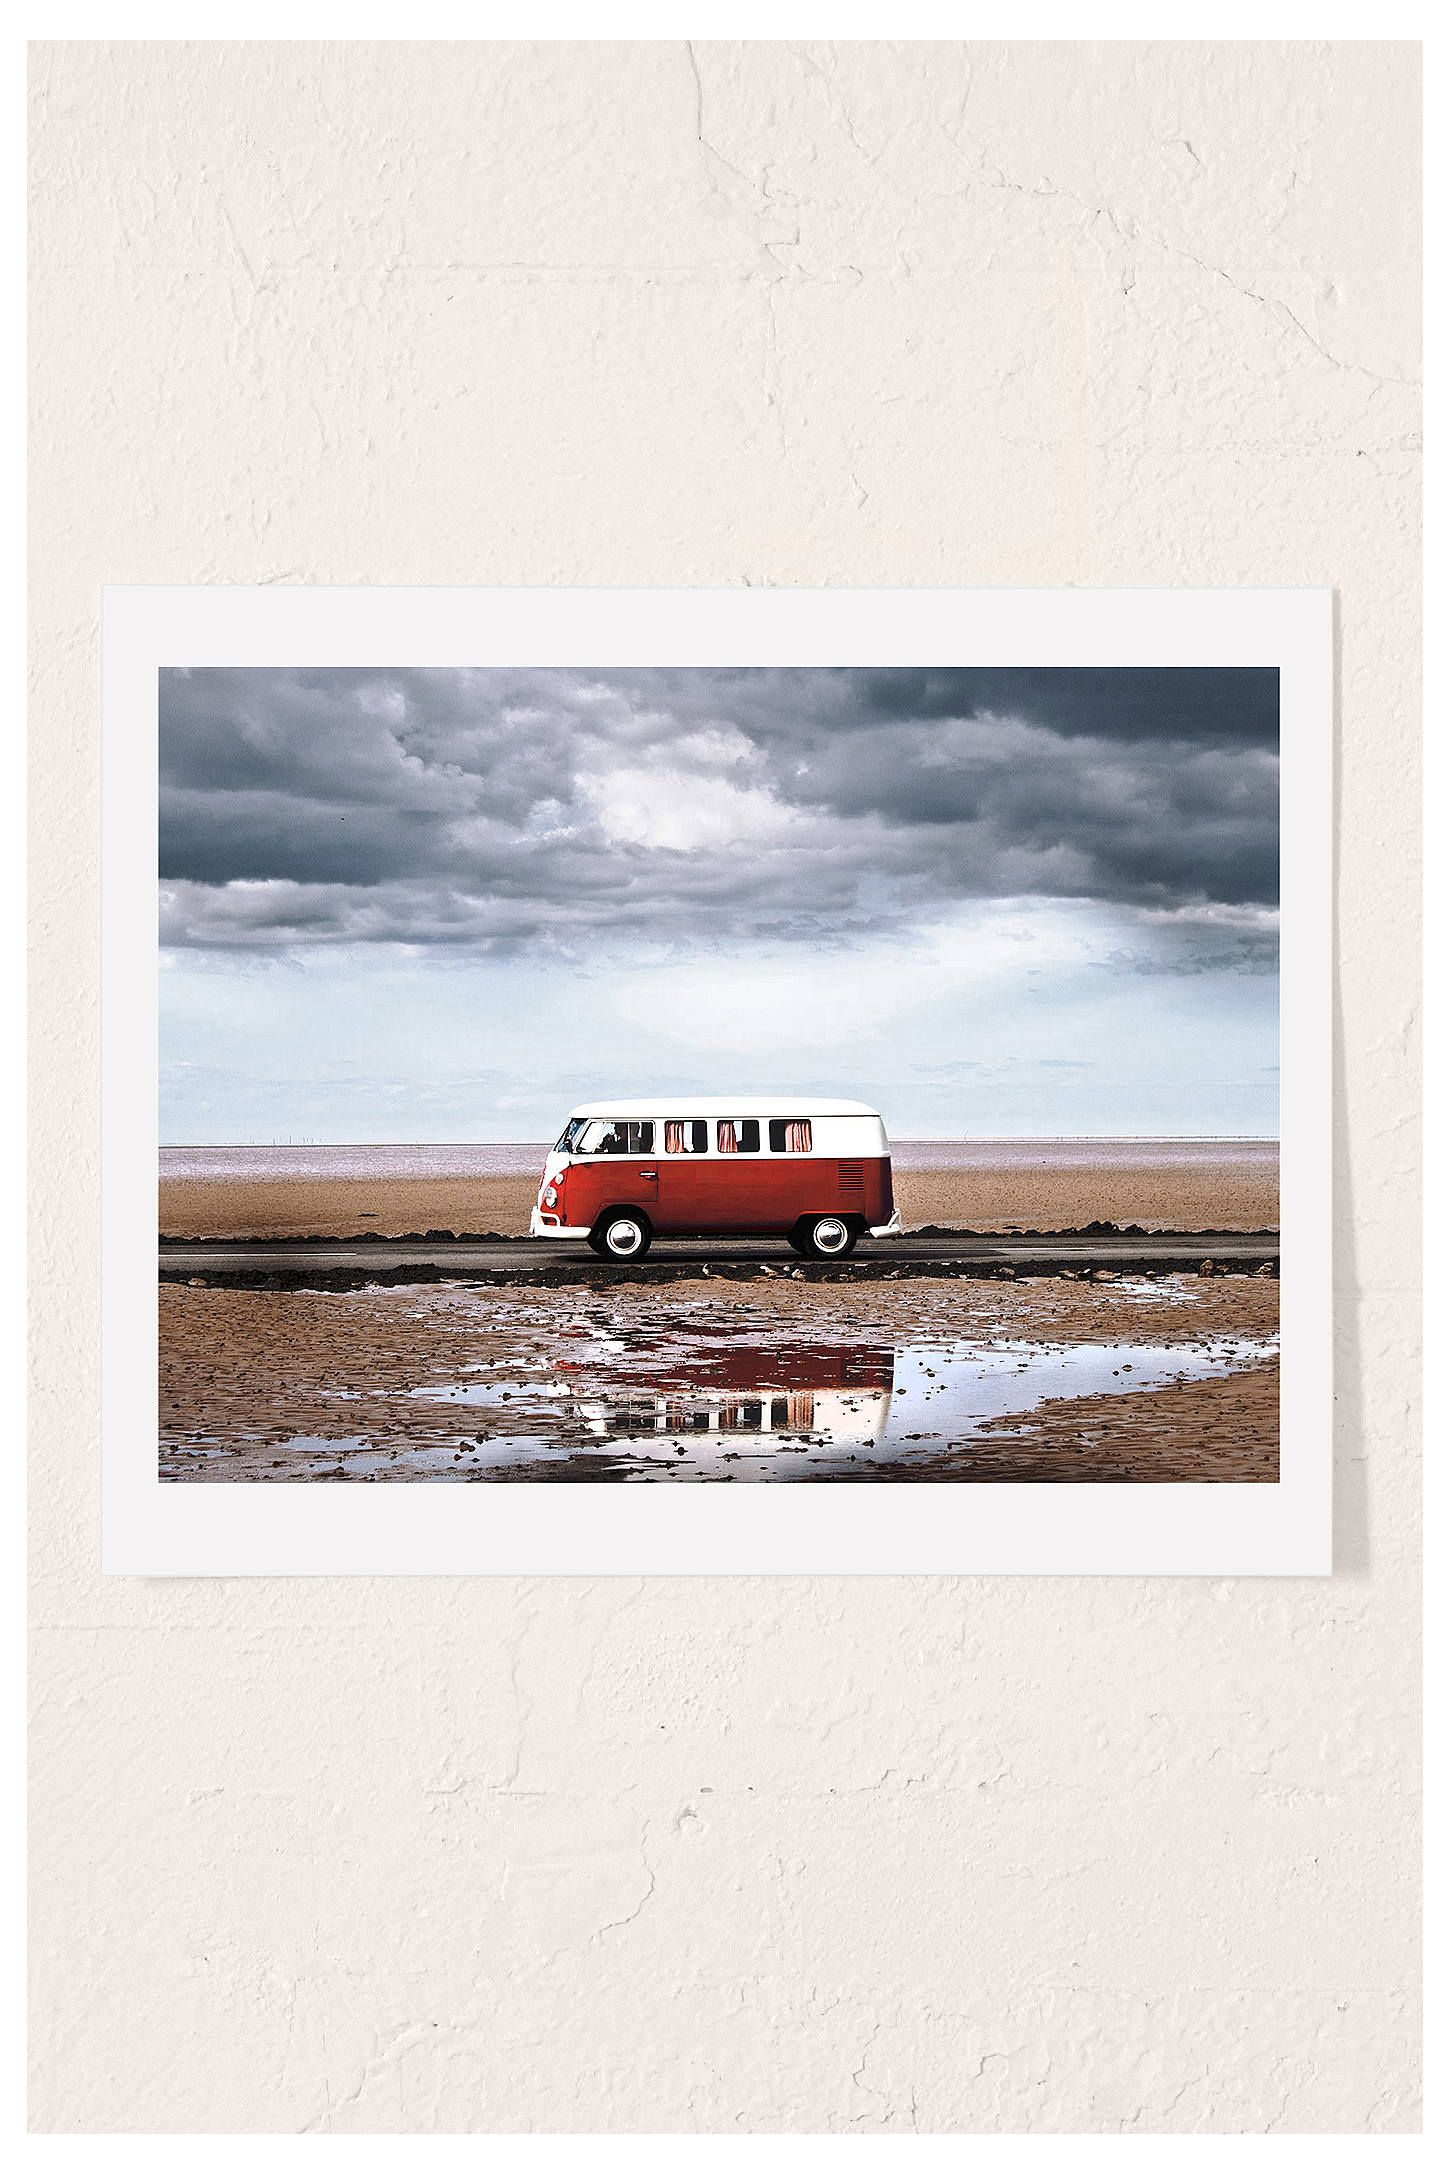 Shop dean martindale tide away art print at urban outfitters today we carry all the latest styles colors and brands for you to choose from right here